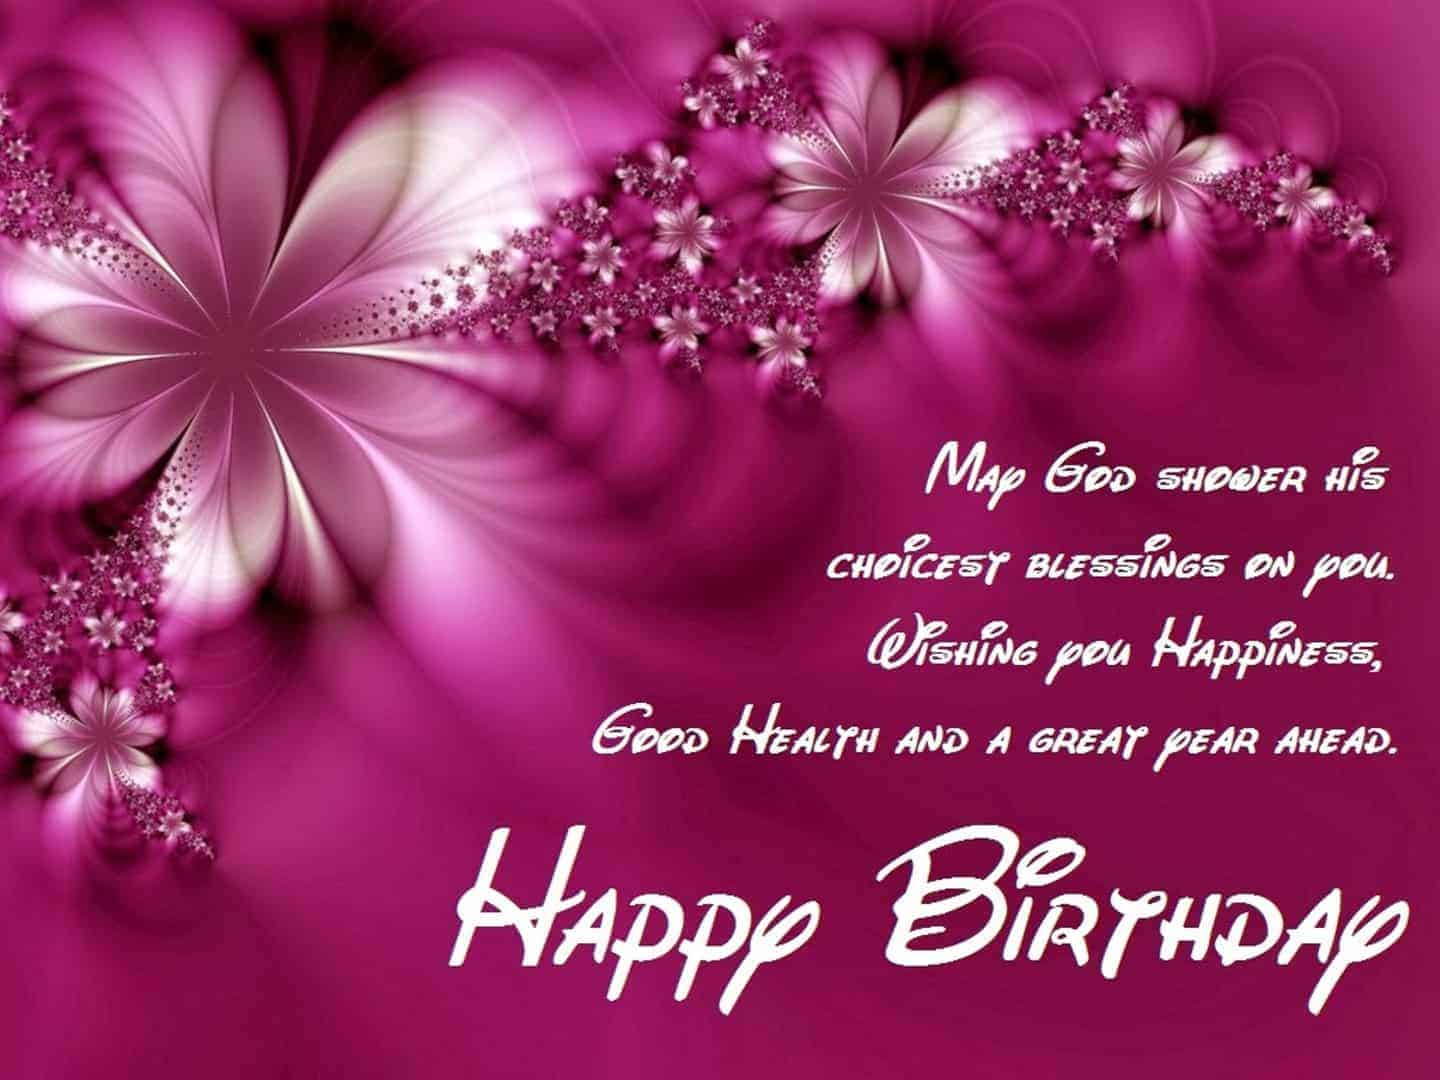 Birthday quotes with birthday quotes images loving happy birthday wishes cards thecheapjerseys Image collections